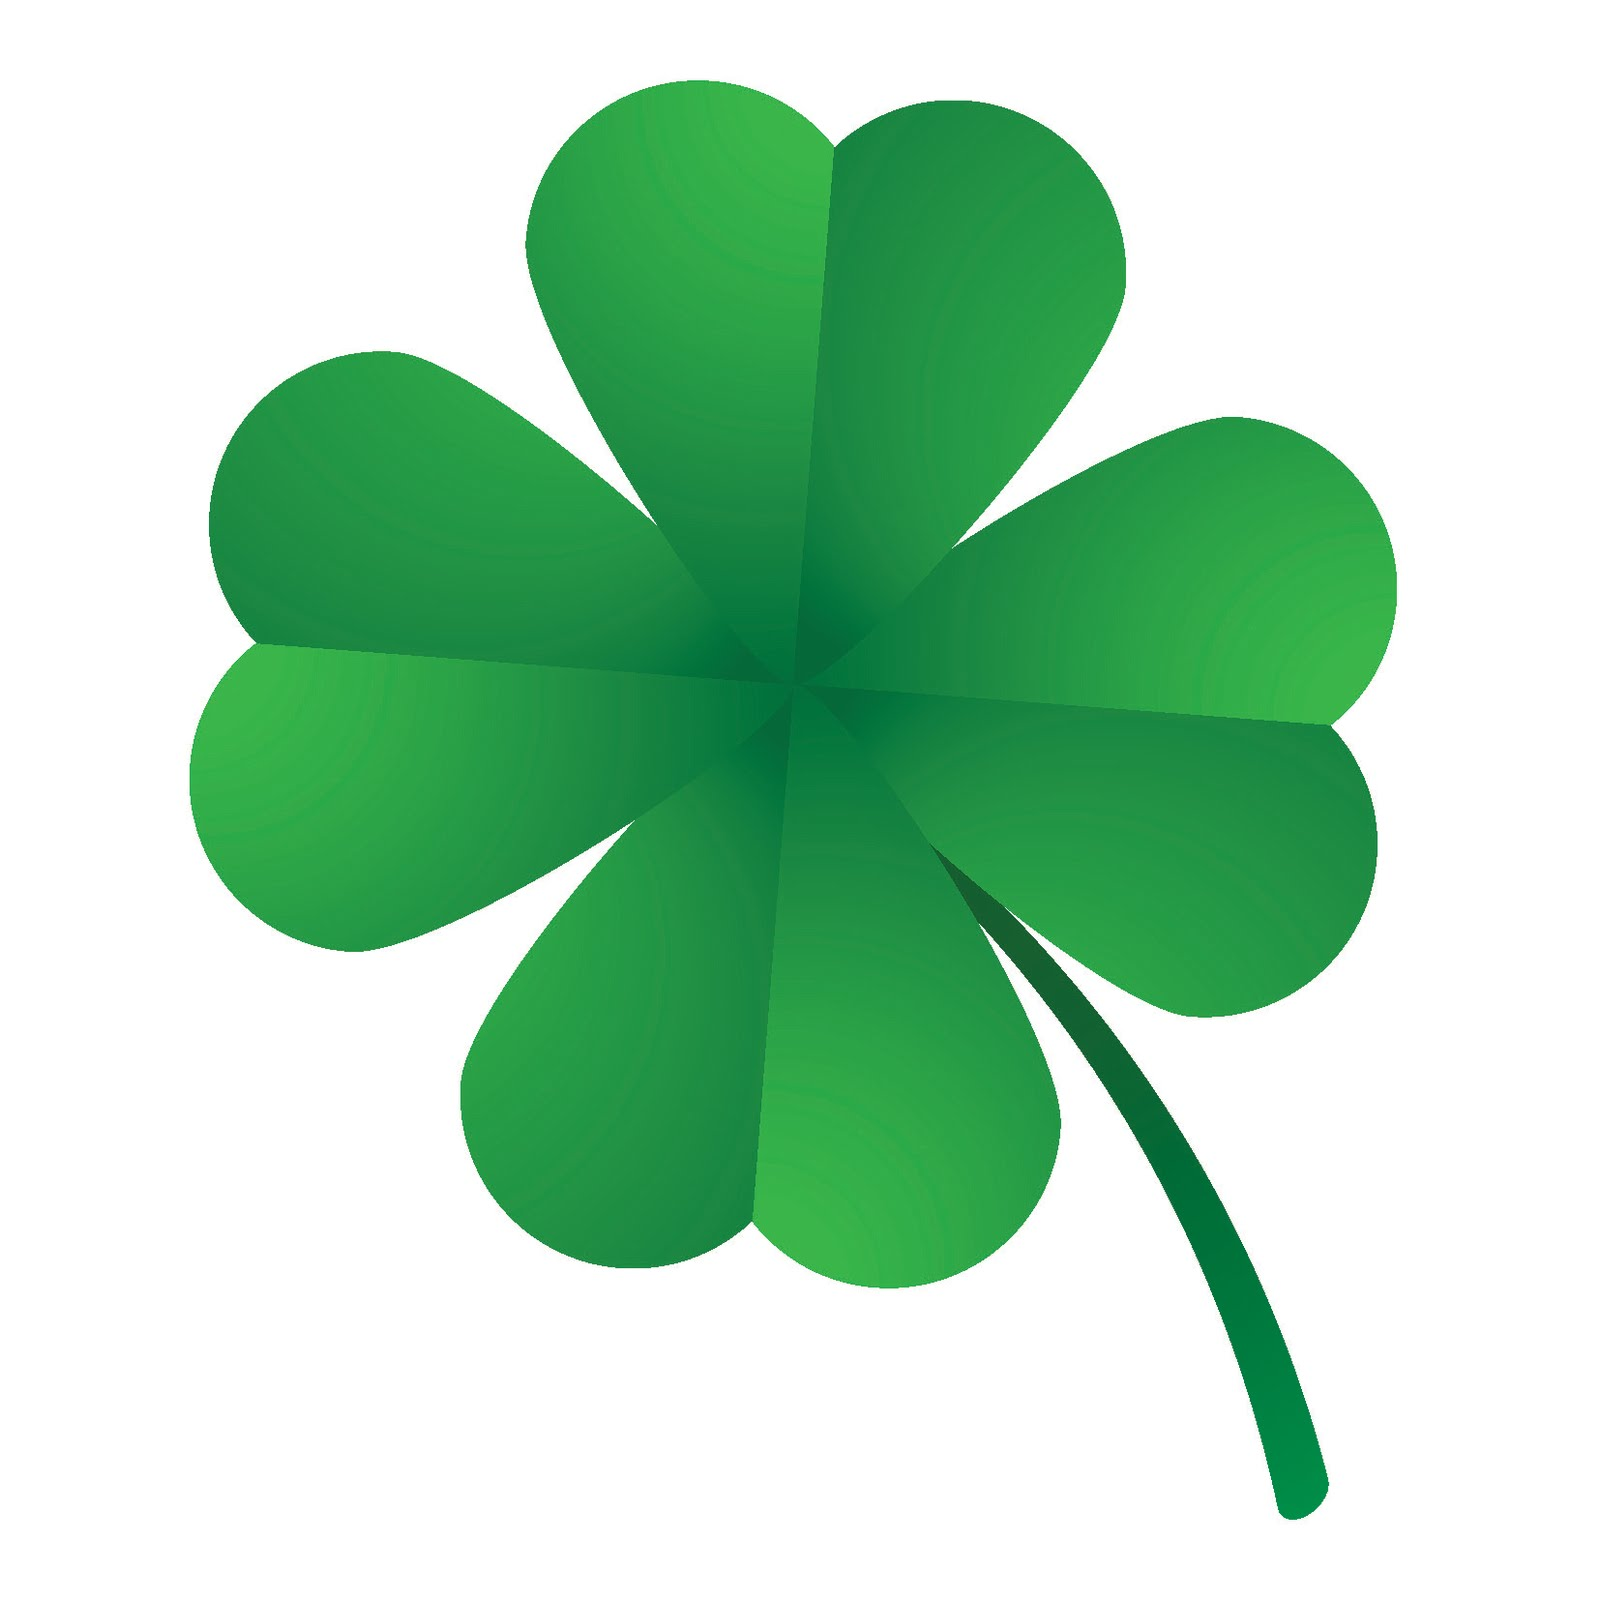 Irish Four Leaf Clover Pictures - ClipArt Best